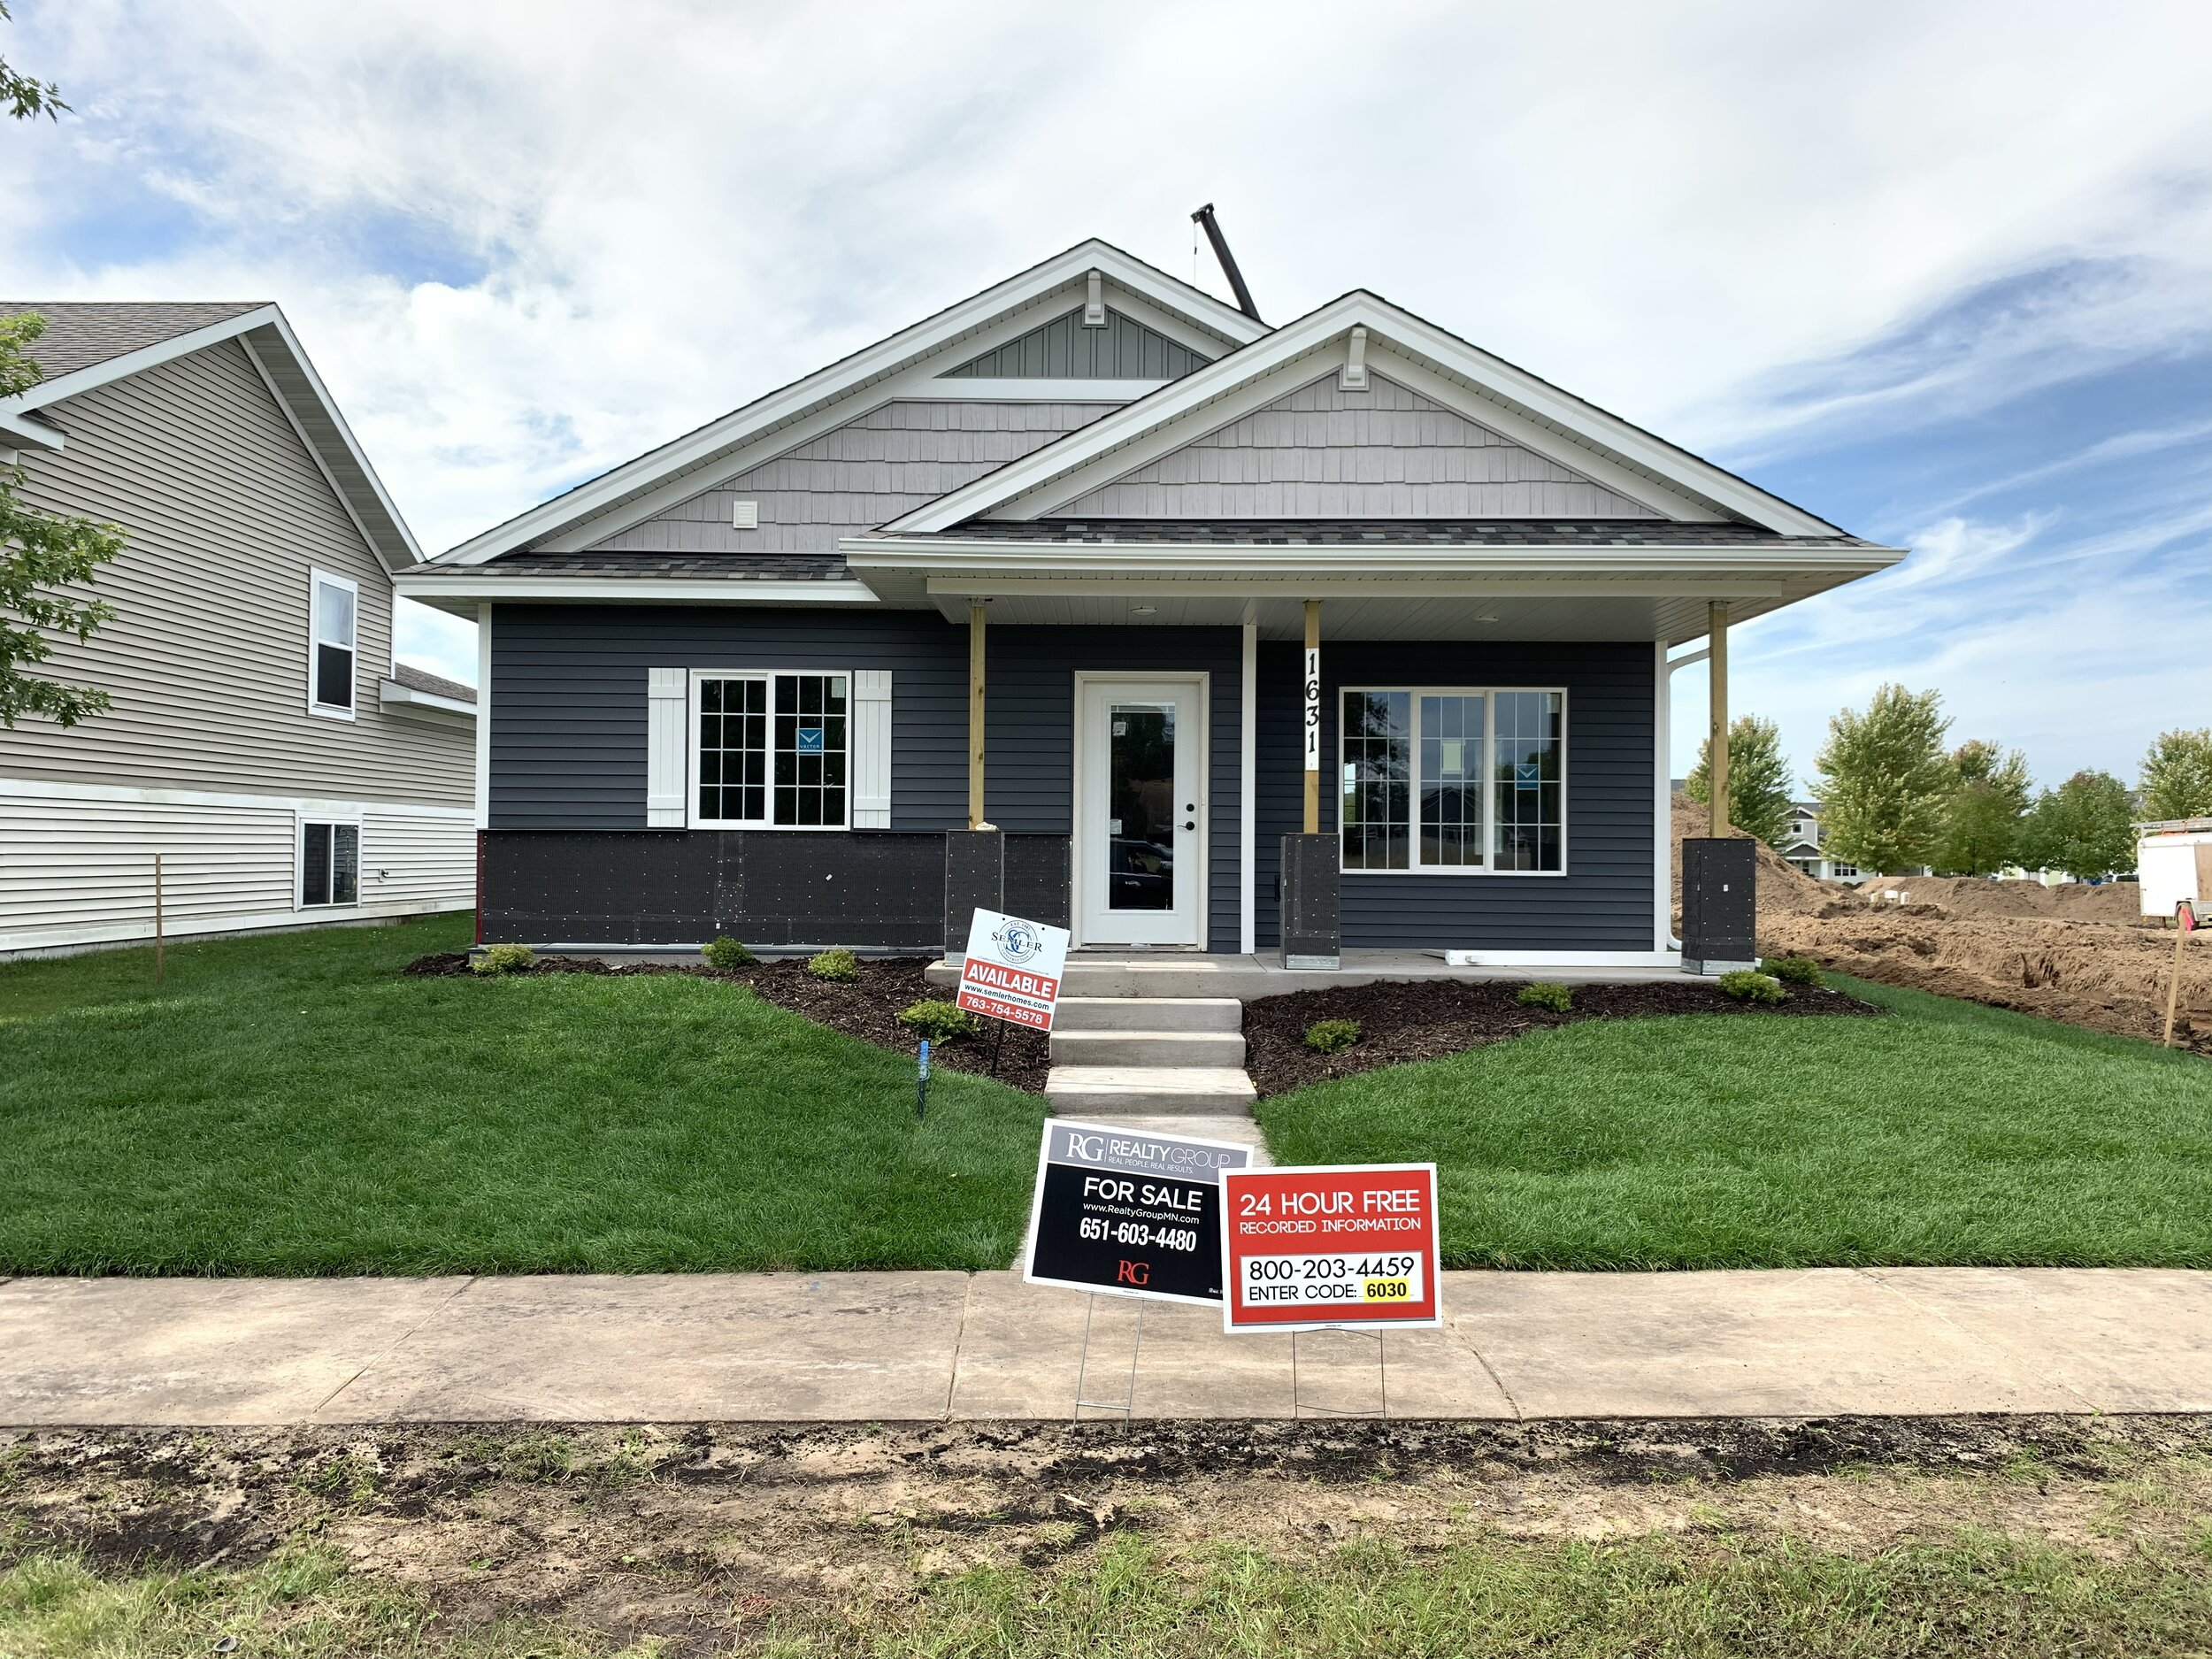 1631 Elm St. SCambridge, MN - The Willow (Alley) by Semler Construction2BR/1BA-1154 FSFOne LevelUnder ConstructionAvailable for Purchase